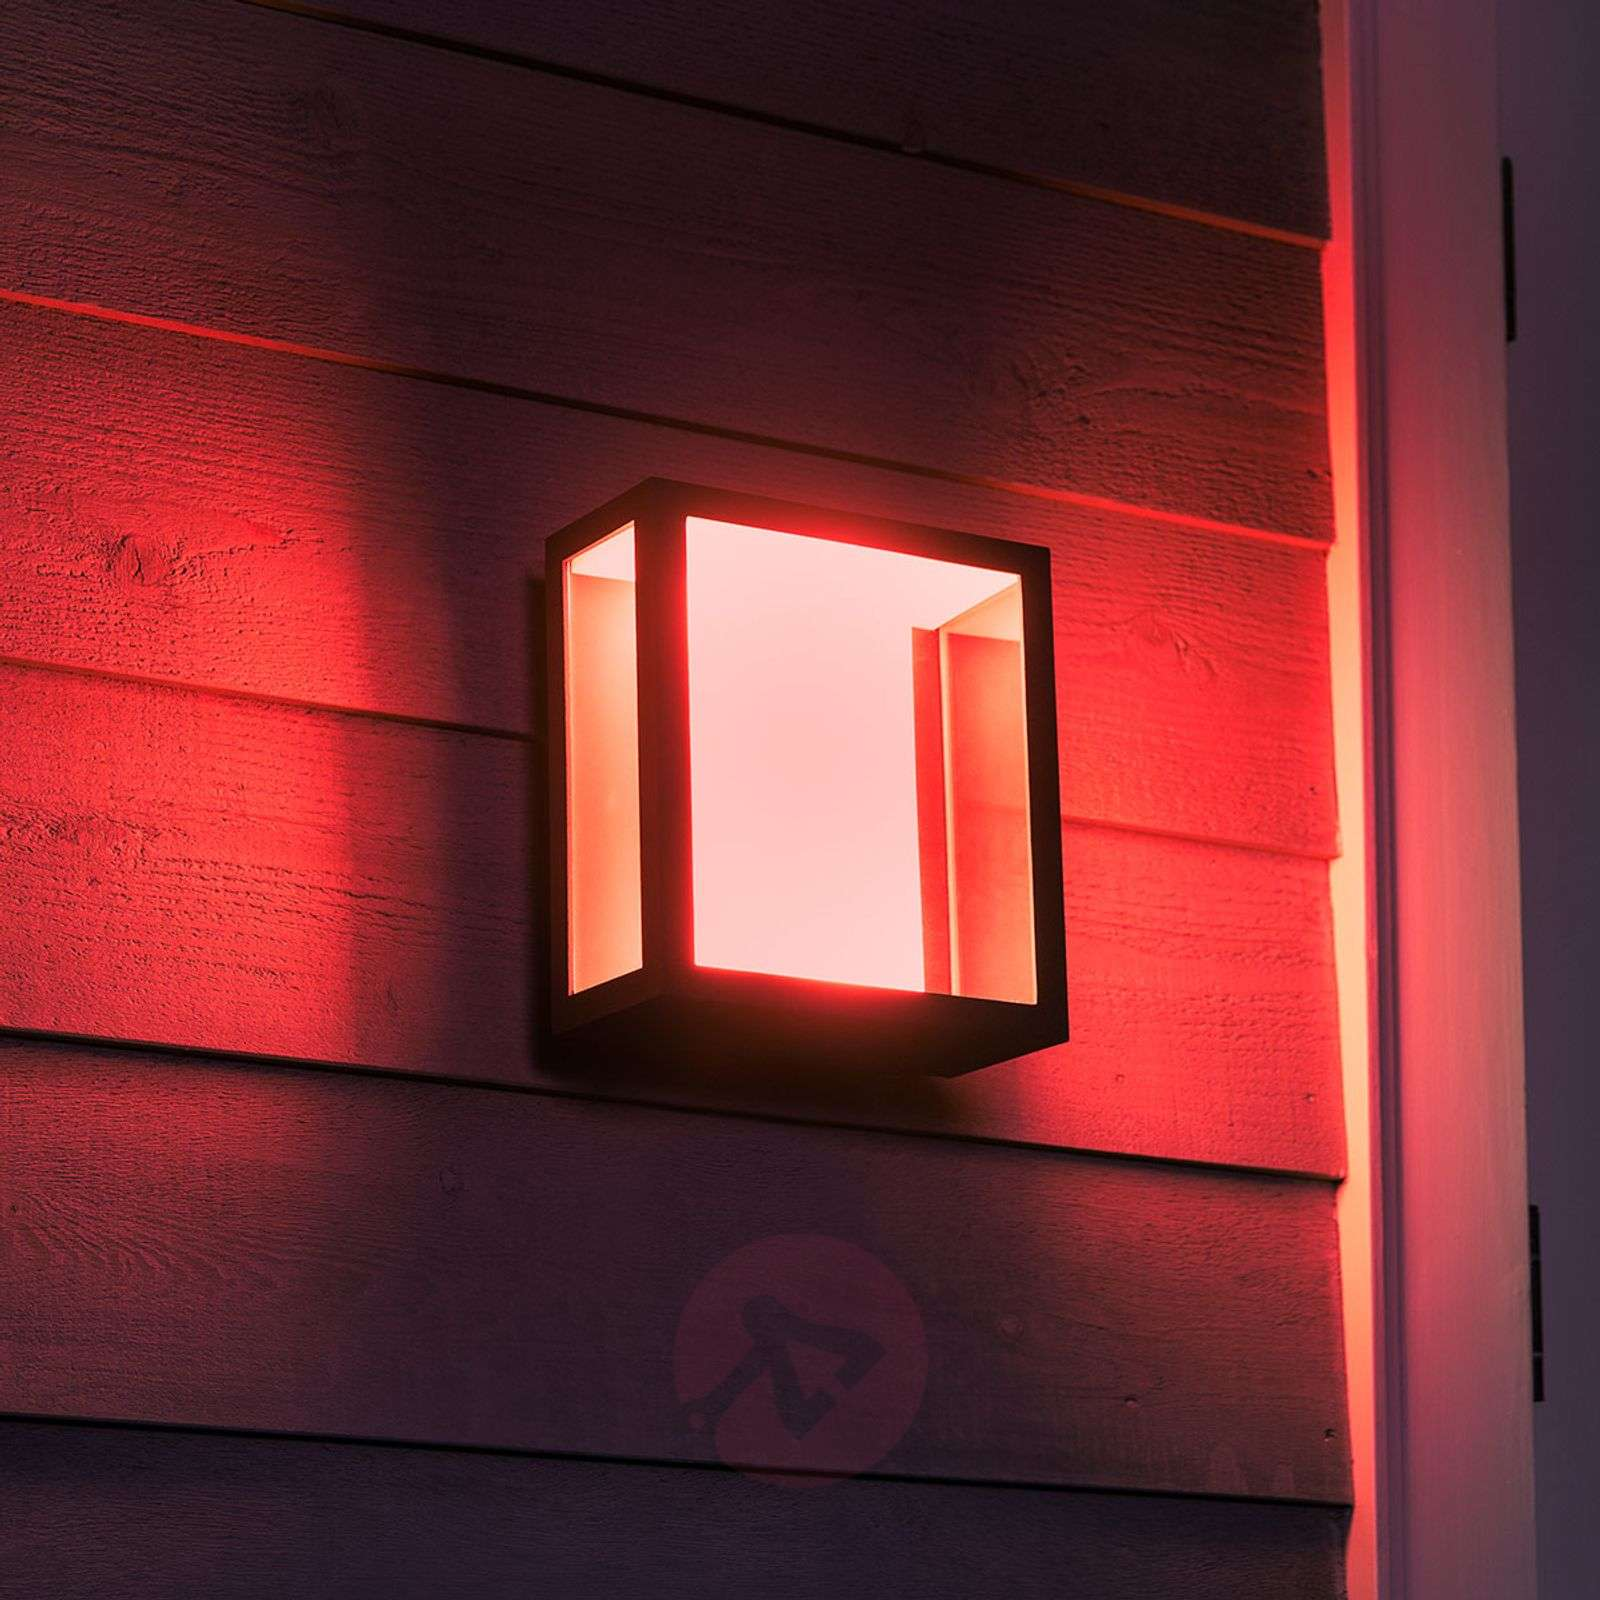 Philips Hue White+Color Impress wall light, wide-7534109-03